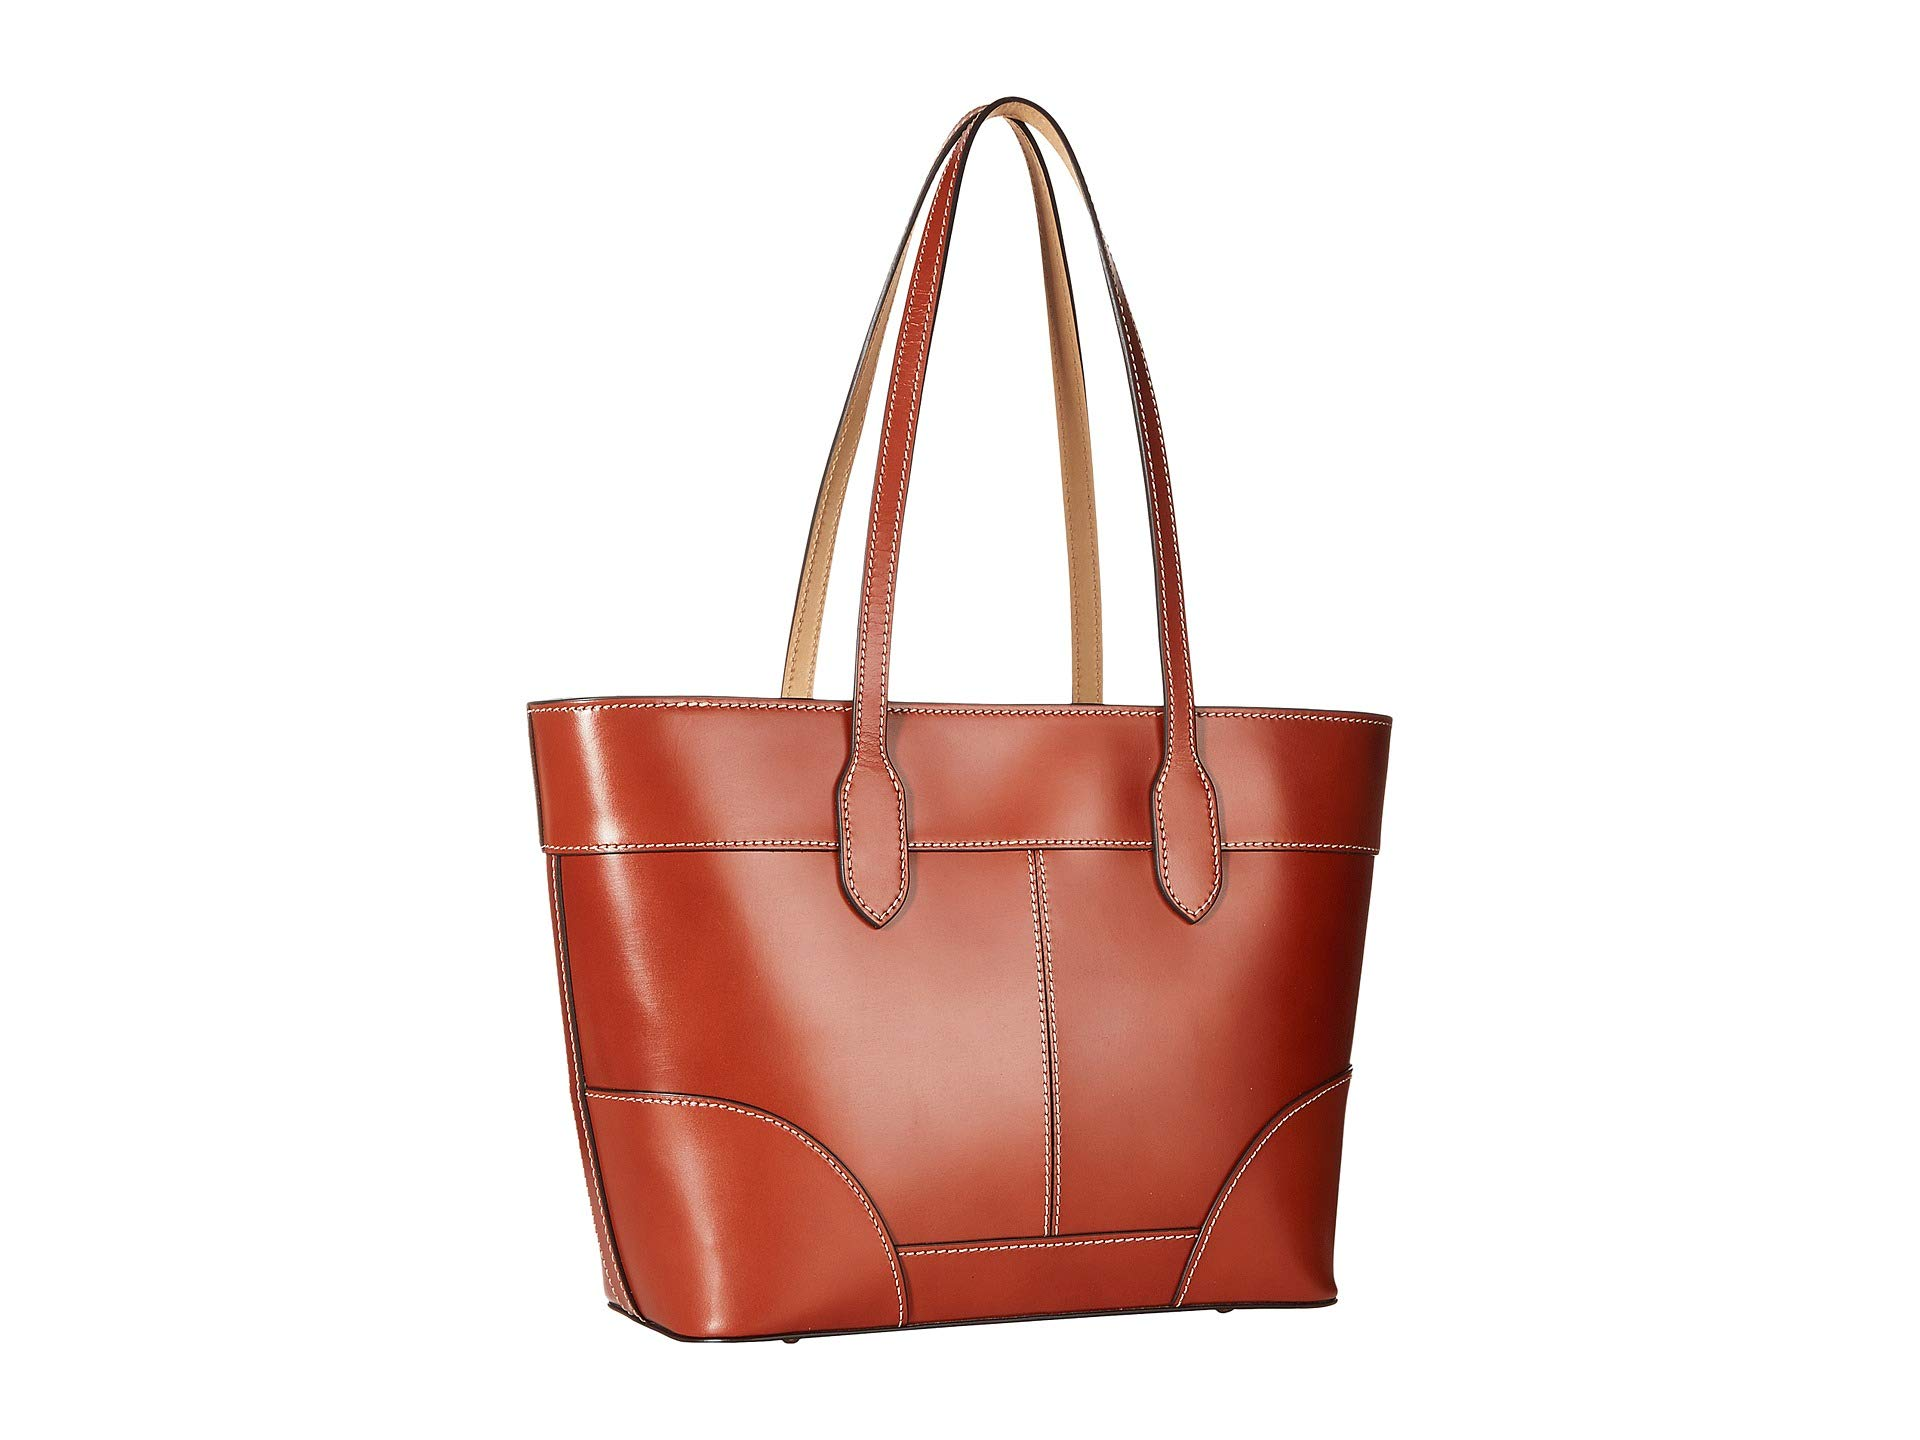 Tote Selleria Tan tan amp; Trim Dooney Bourke 64w88f